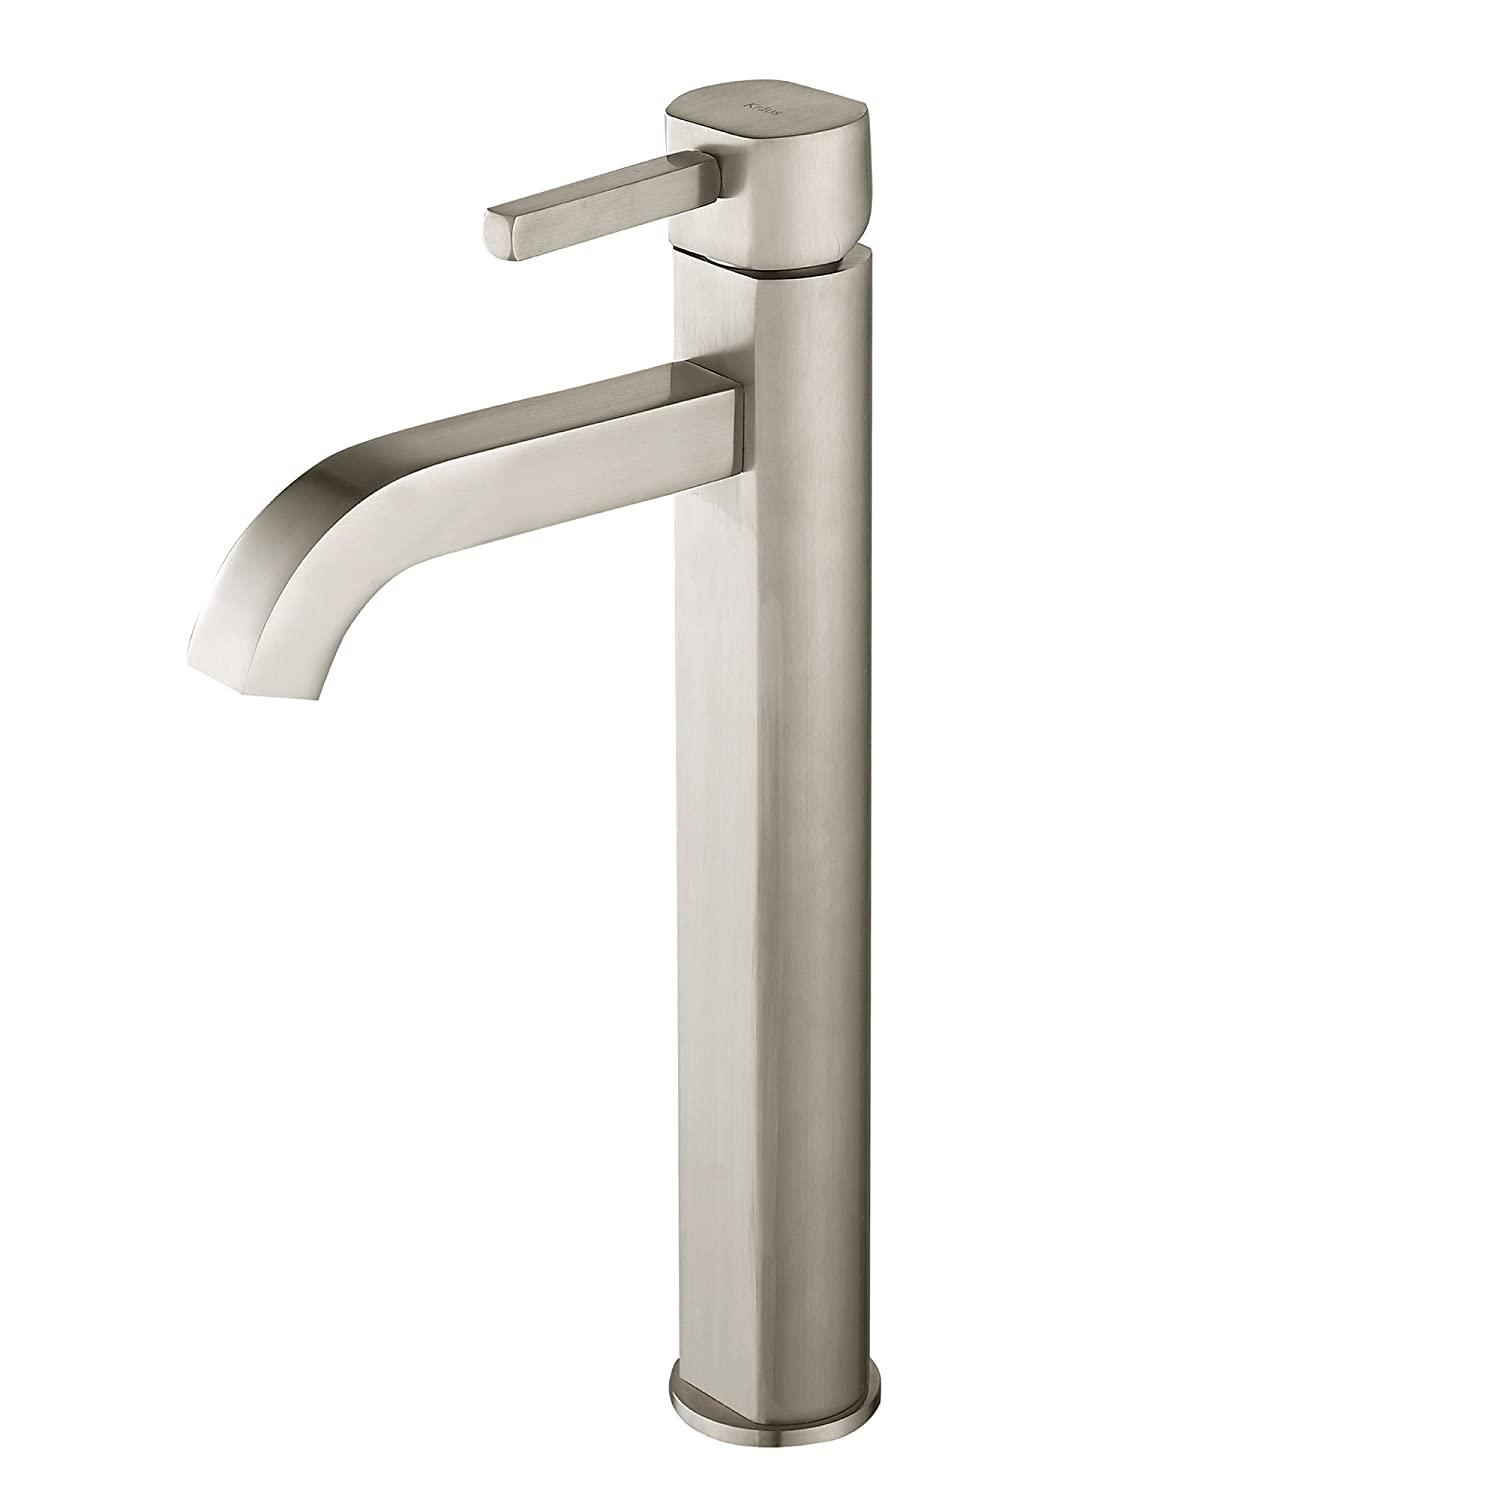 Kraus FVS 1007SN Ramus Single Lever Vessel Bathroom Faucet Satin